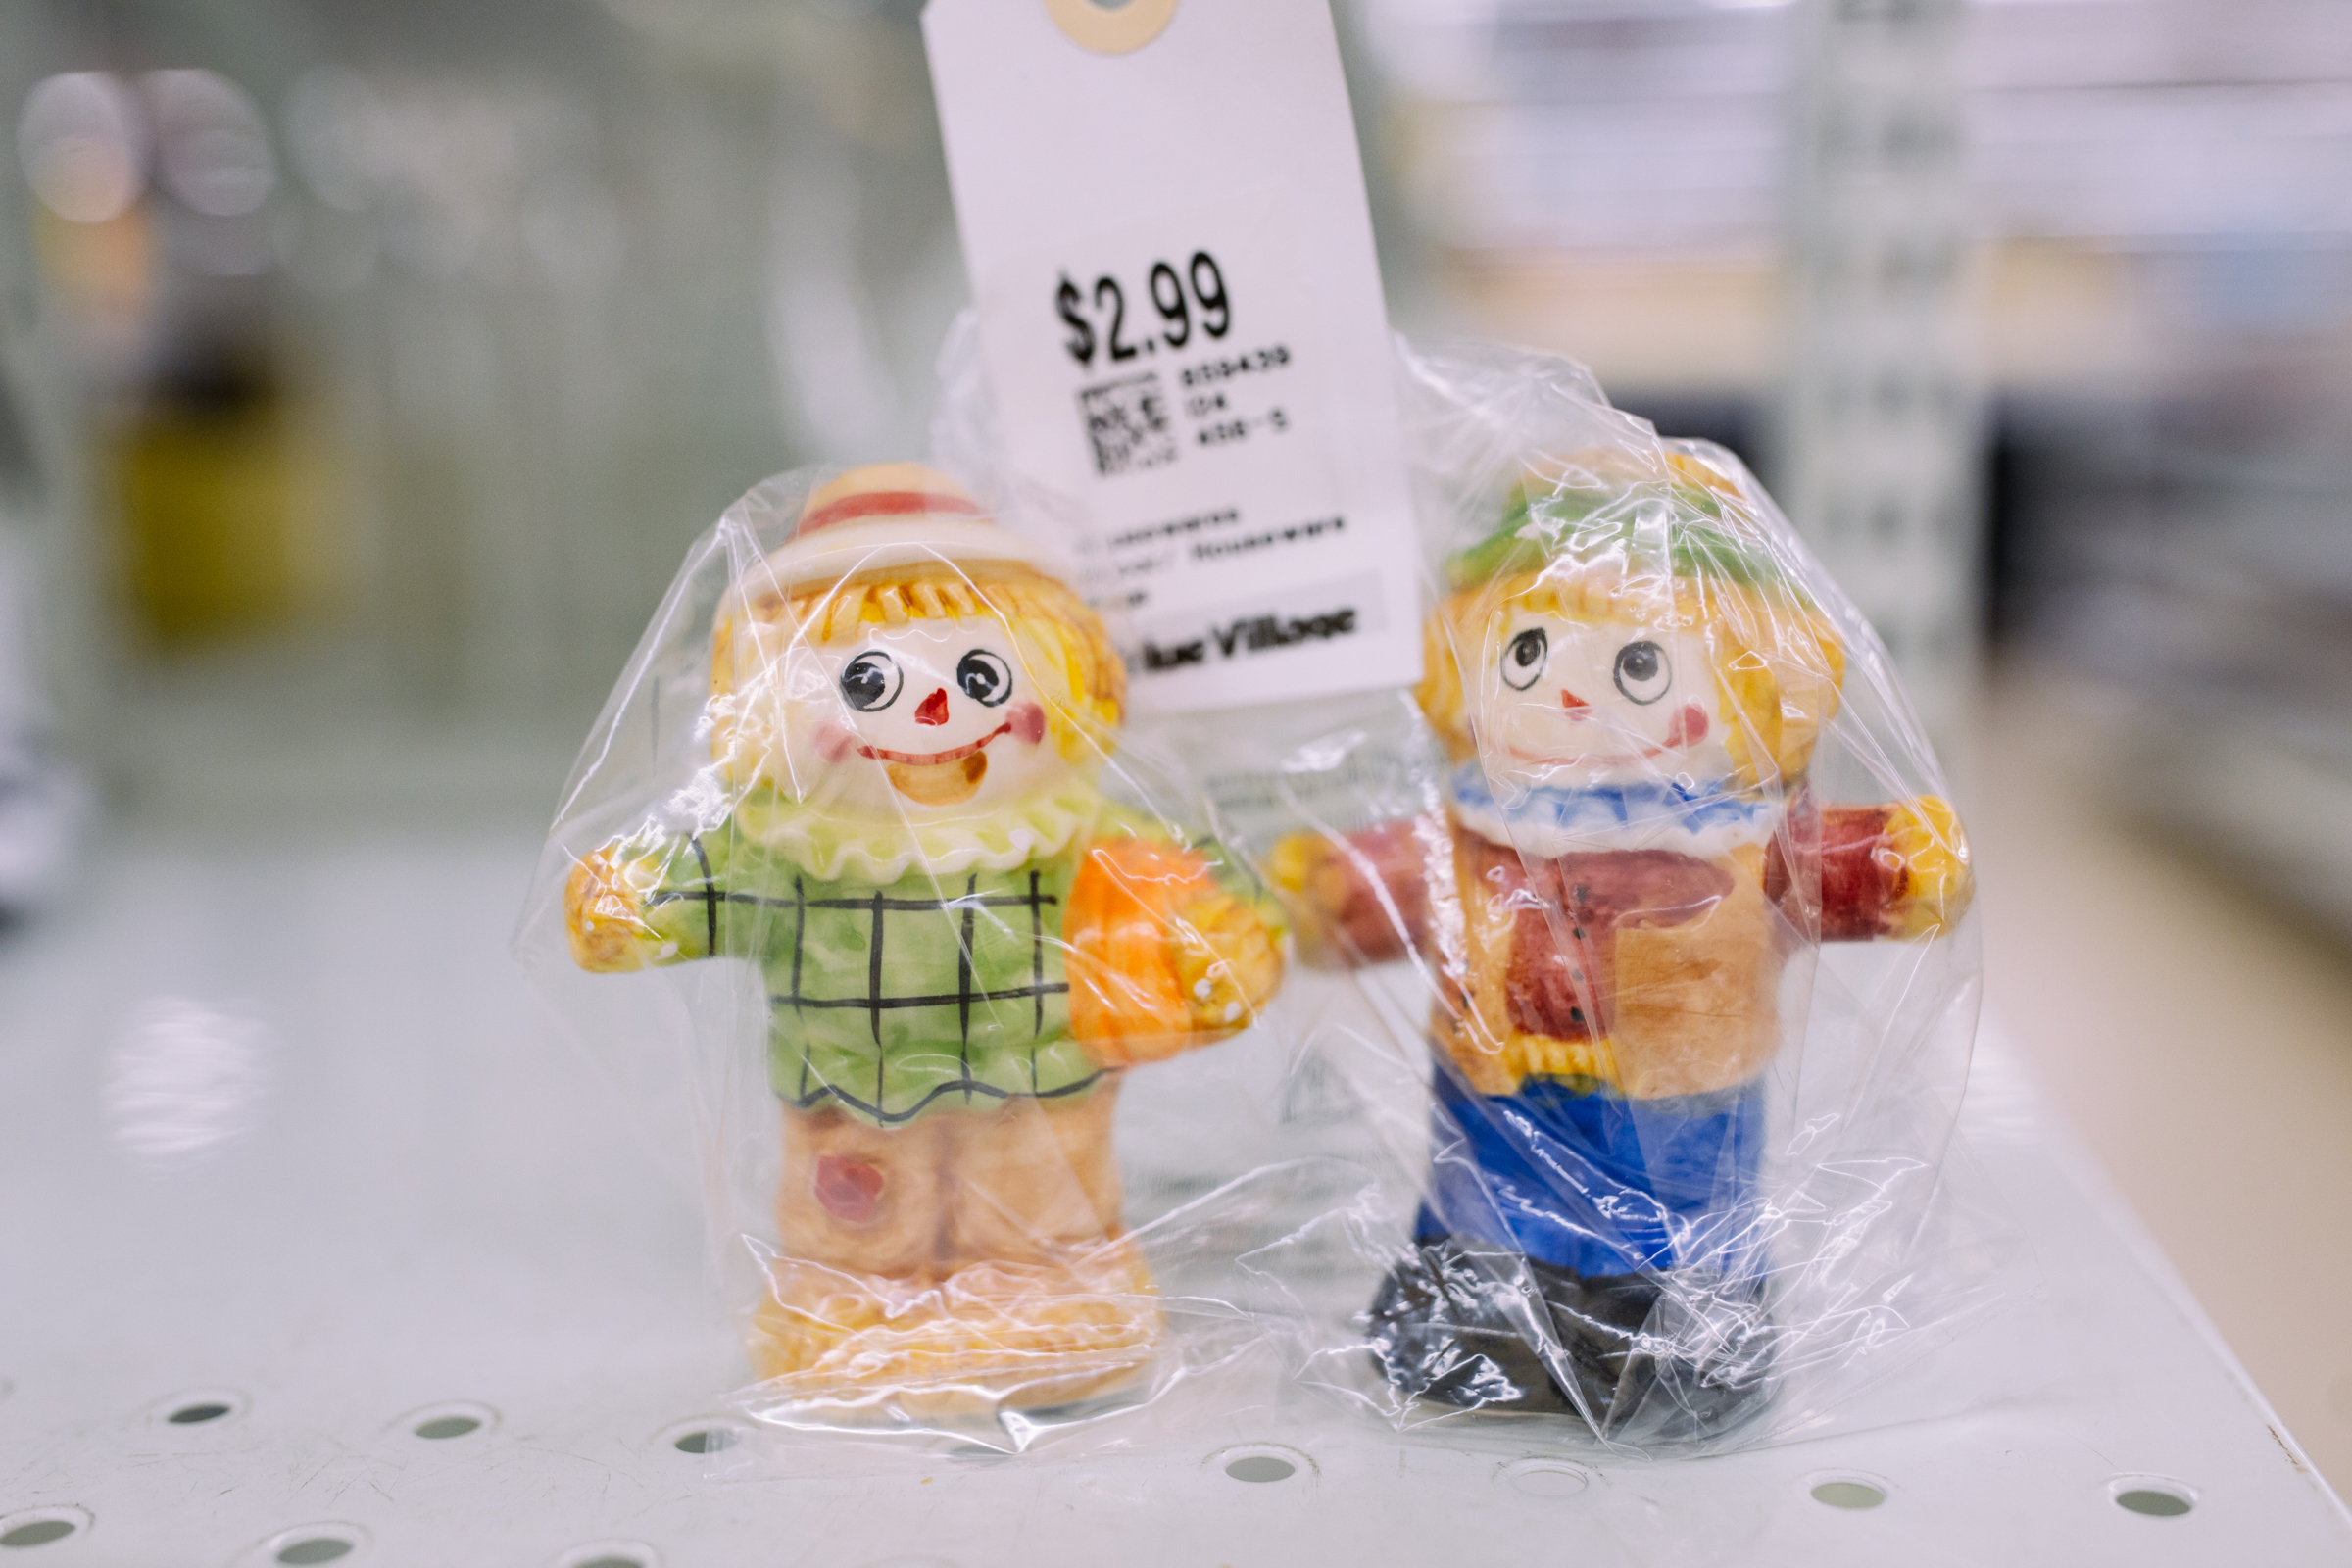 Scare crow salt and pepper shakers. $2.99  Are you going to a White Elephant Gift Exchange this year? We headed to our local Value Village to give you some gift ideas and how much they cost. (Image: Joshua Lewis / Seattle Refined)